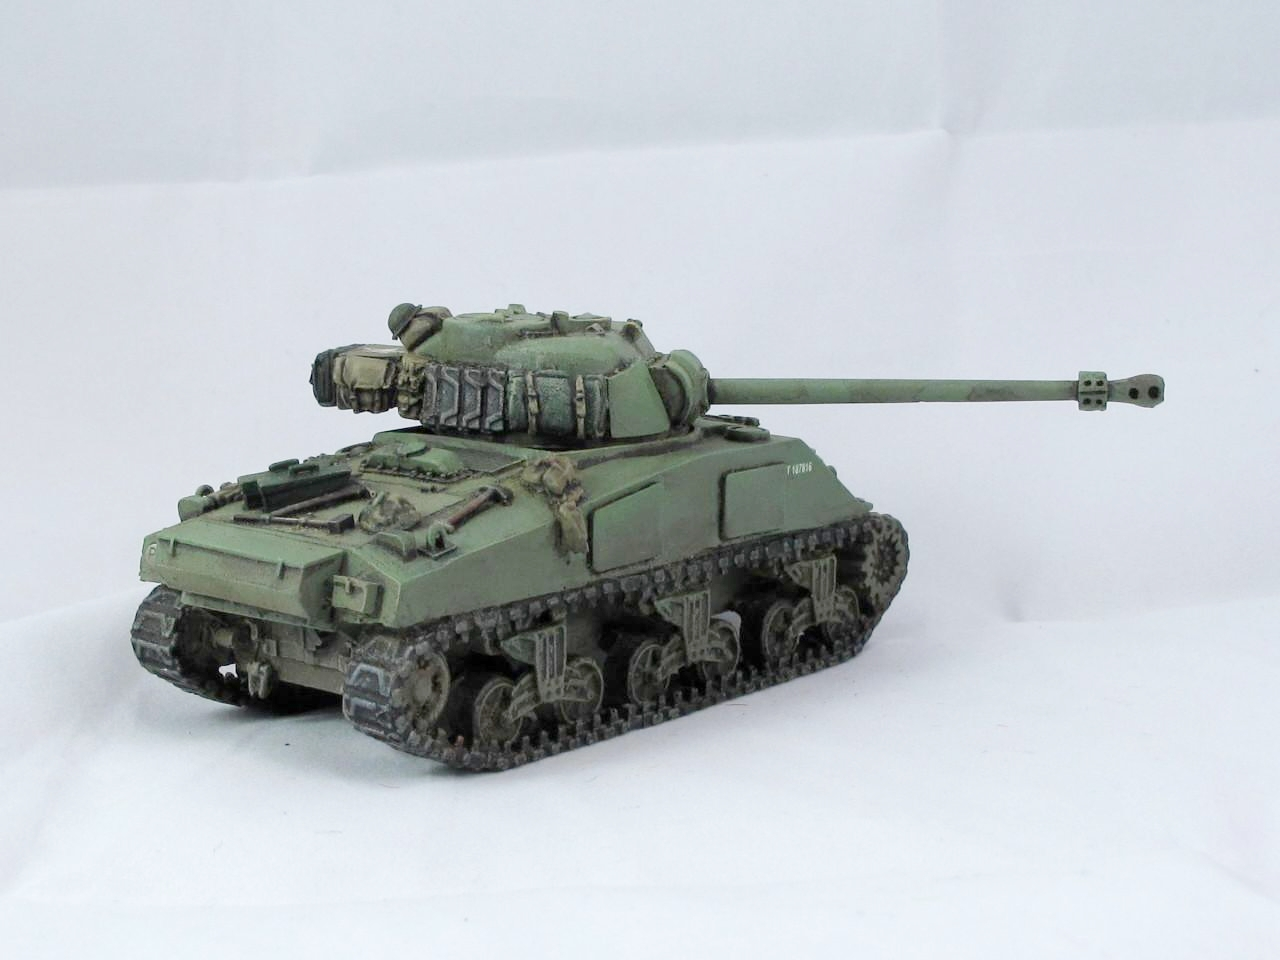 A Firefly in 28mm from Andy Duffell